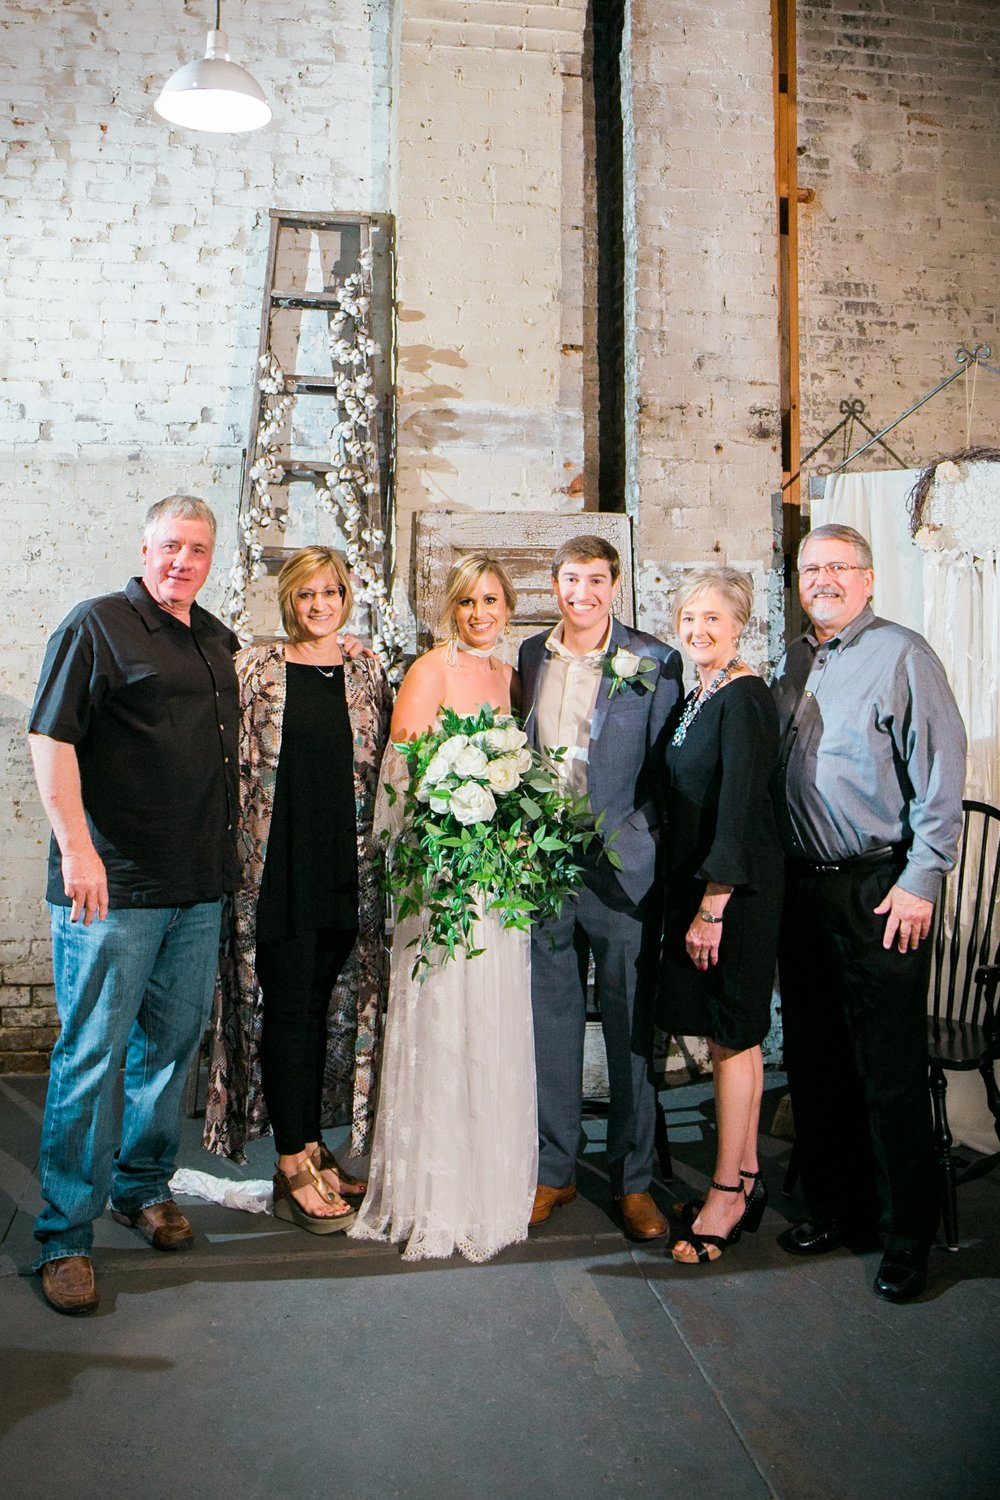 Magan-Landon-Surprise-wedding-at-southern-jeweled-warehouse-wichita-falls-texas-lauren-pinson-062.jpg